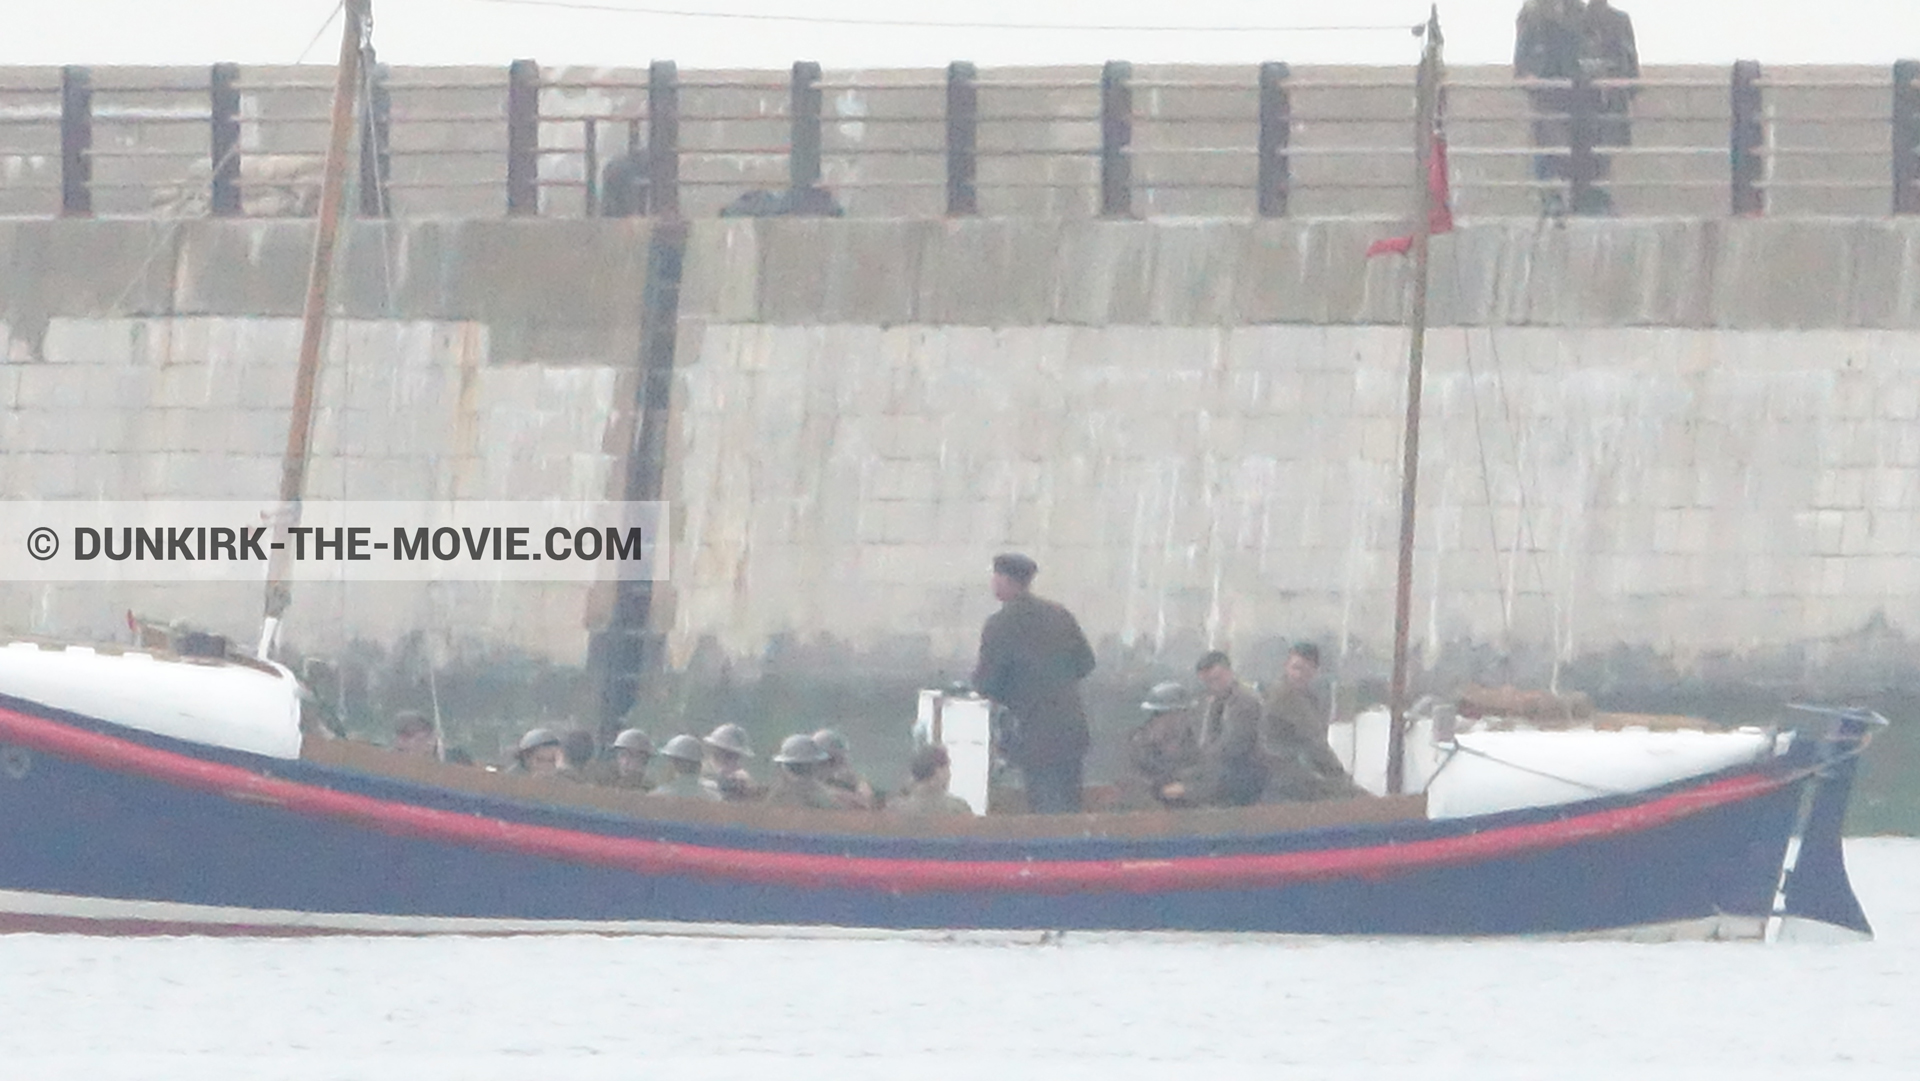 Picture with boat, supernumeraries, EST pier, Henry Finlay lifeboat,  from behind the scene of the Dunkirk movie by Nolan